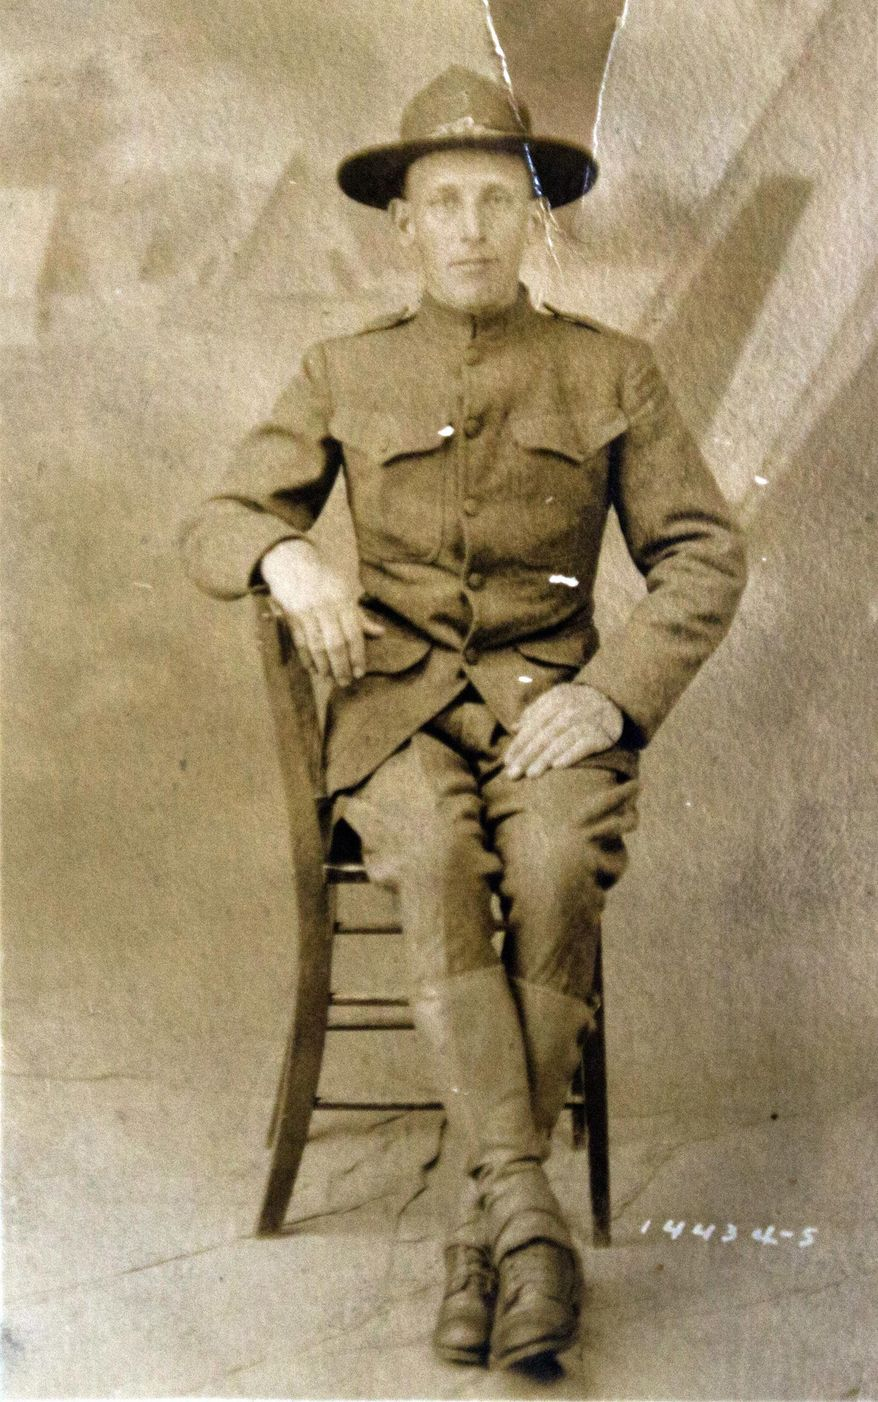 In this undated image provided by the family of Mary Thompson, Army Private Guy Ford poses for an official American Expeditionary Force photo. Guy Ford, from a small town in West Virginia was drafted into the Army and sent to France to fight in the Meuse-Argonne during World War I. (Mary Thompson via AP)